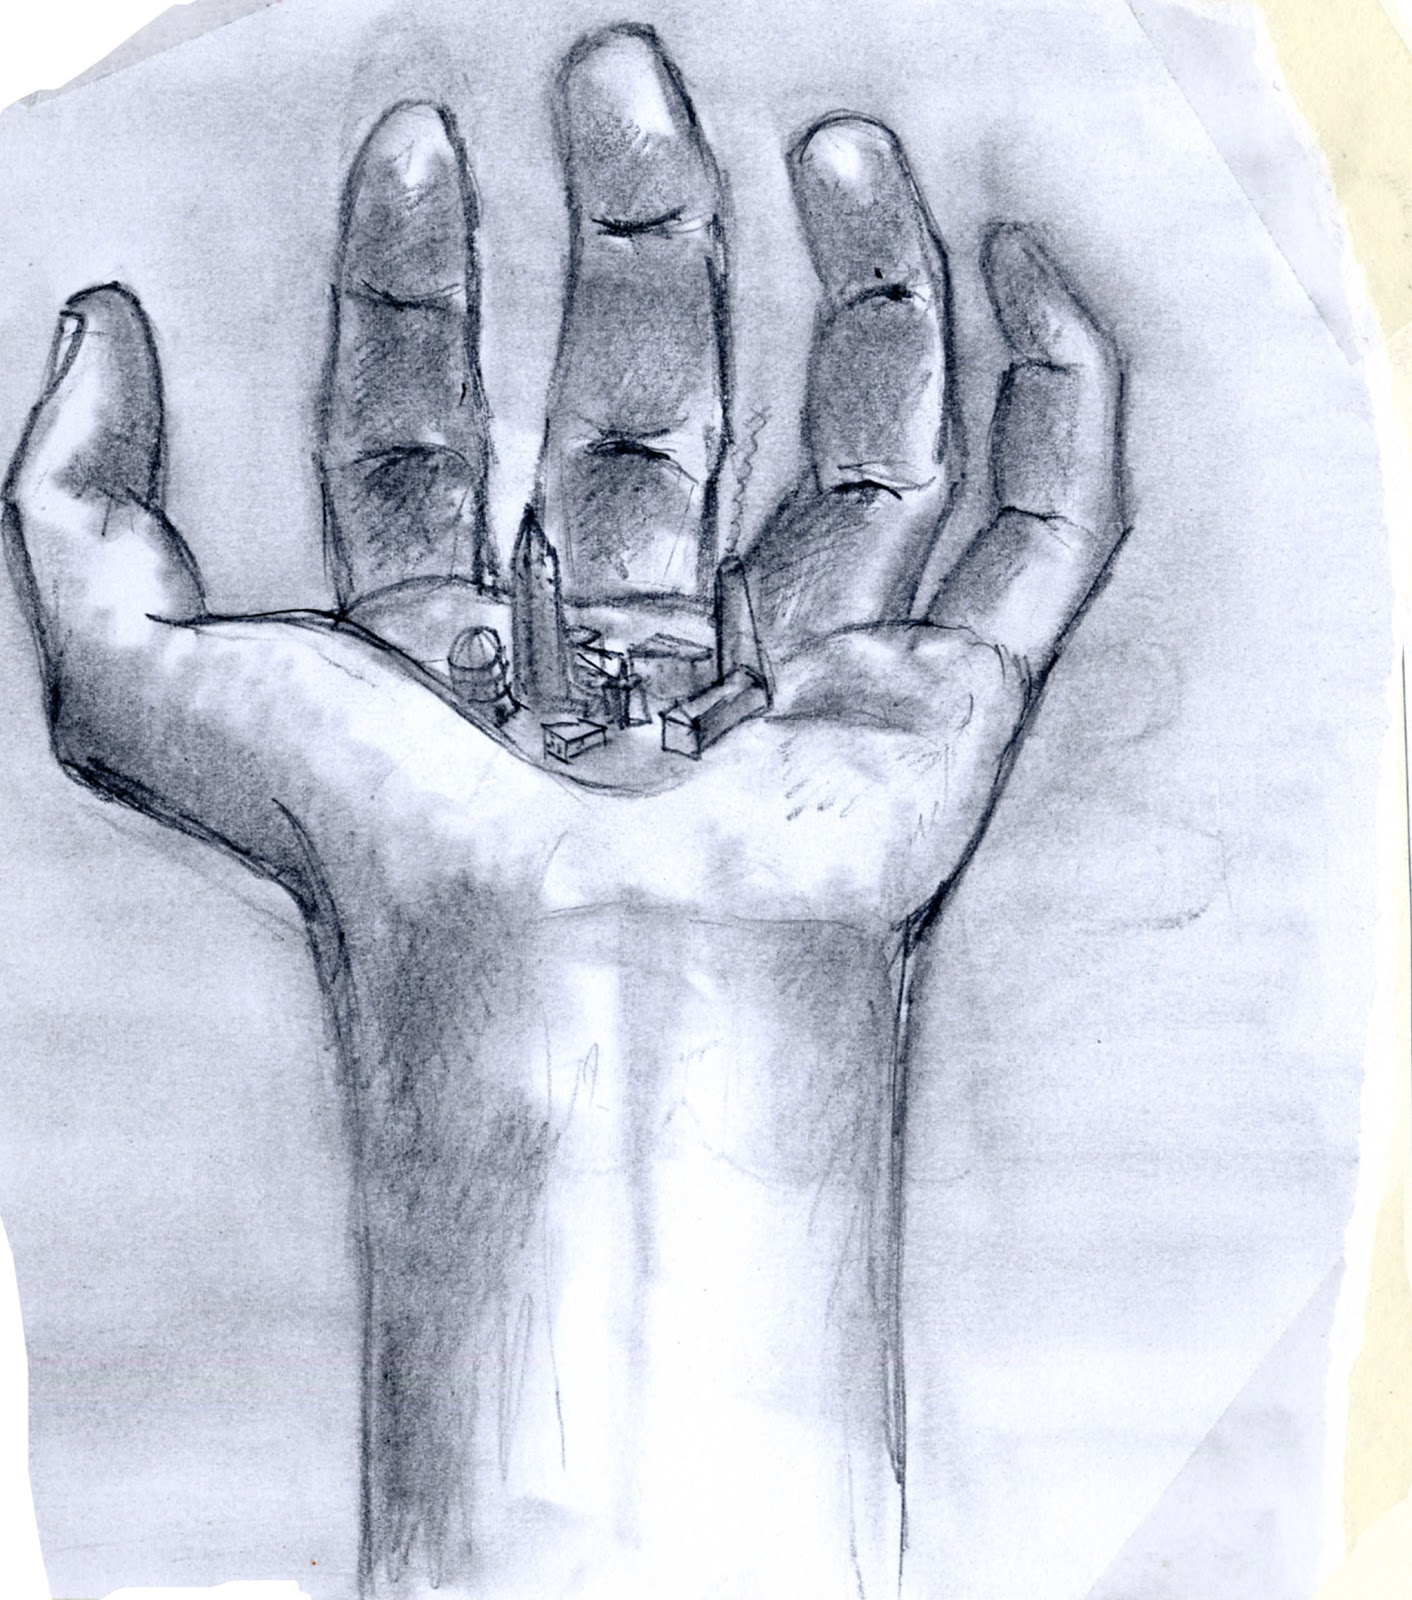 Scales On Hand Drawing For Art